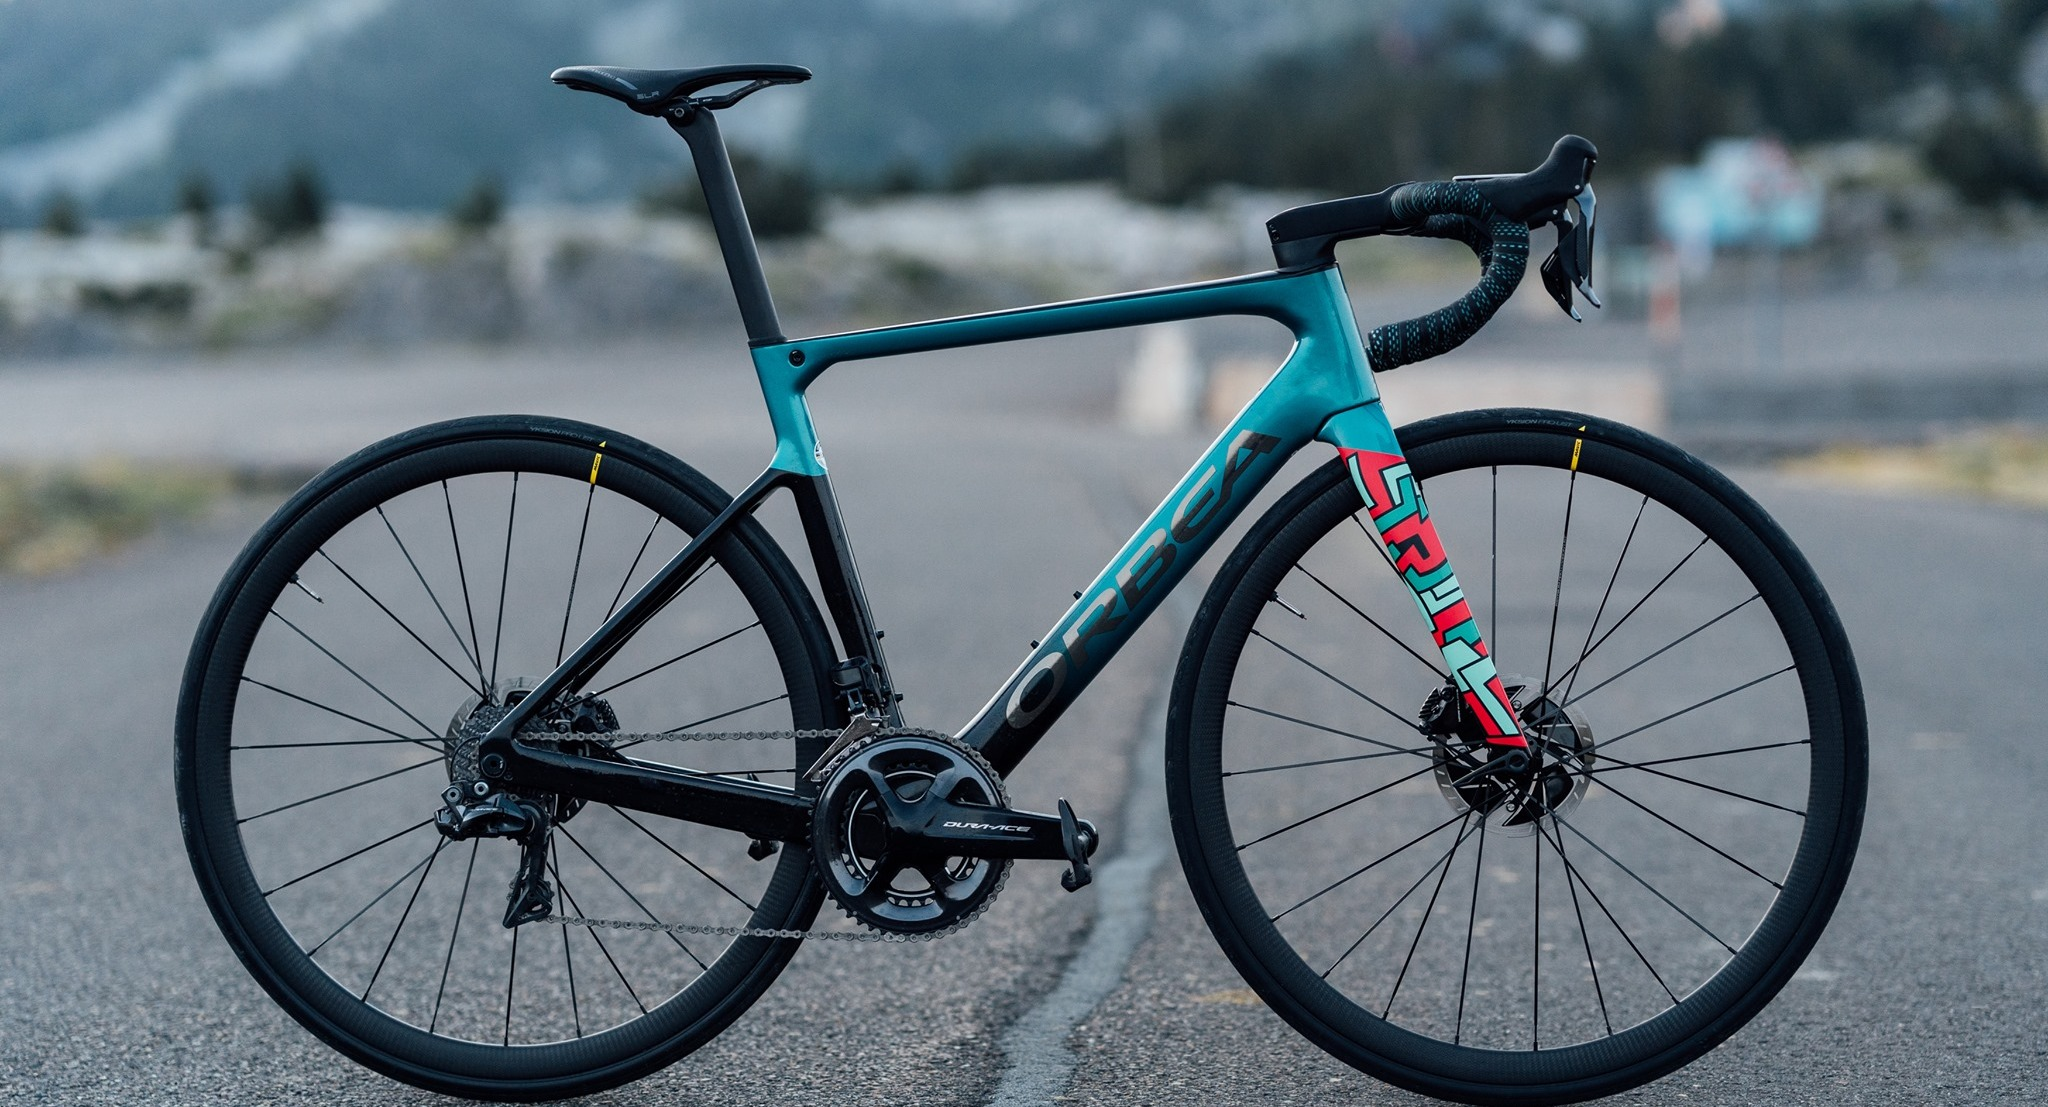 The Orbea Orca is highly customizable